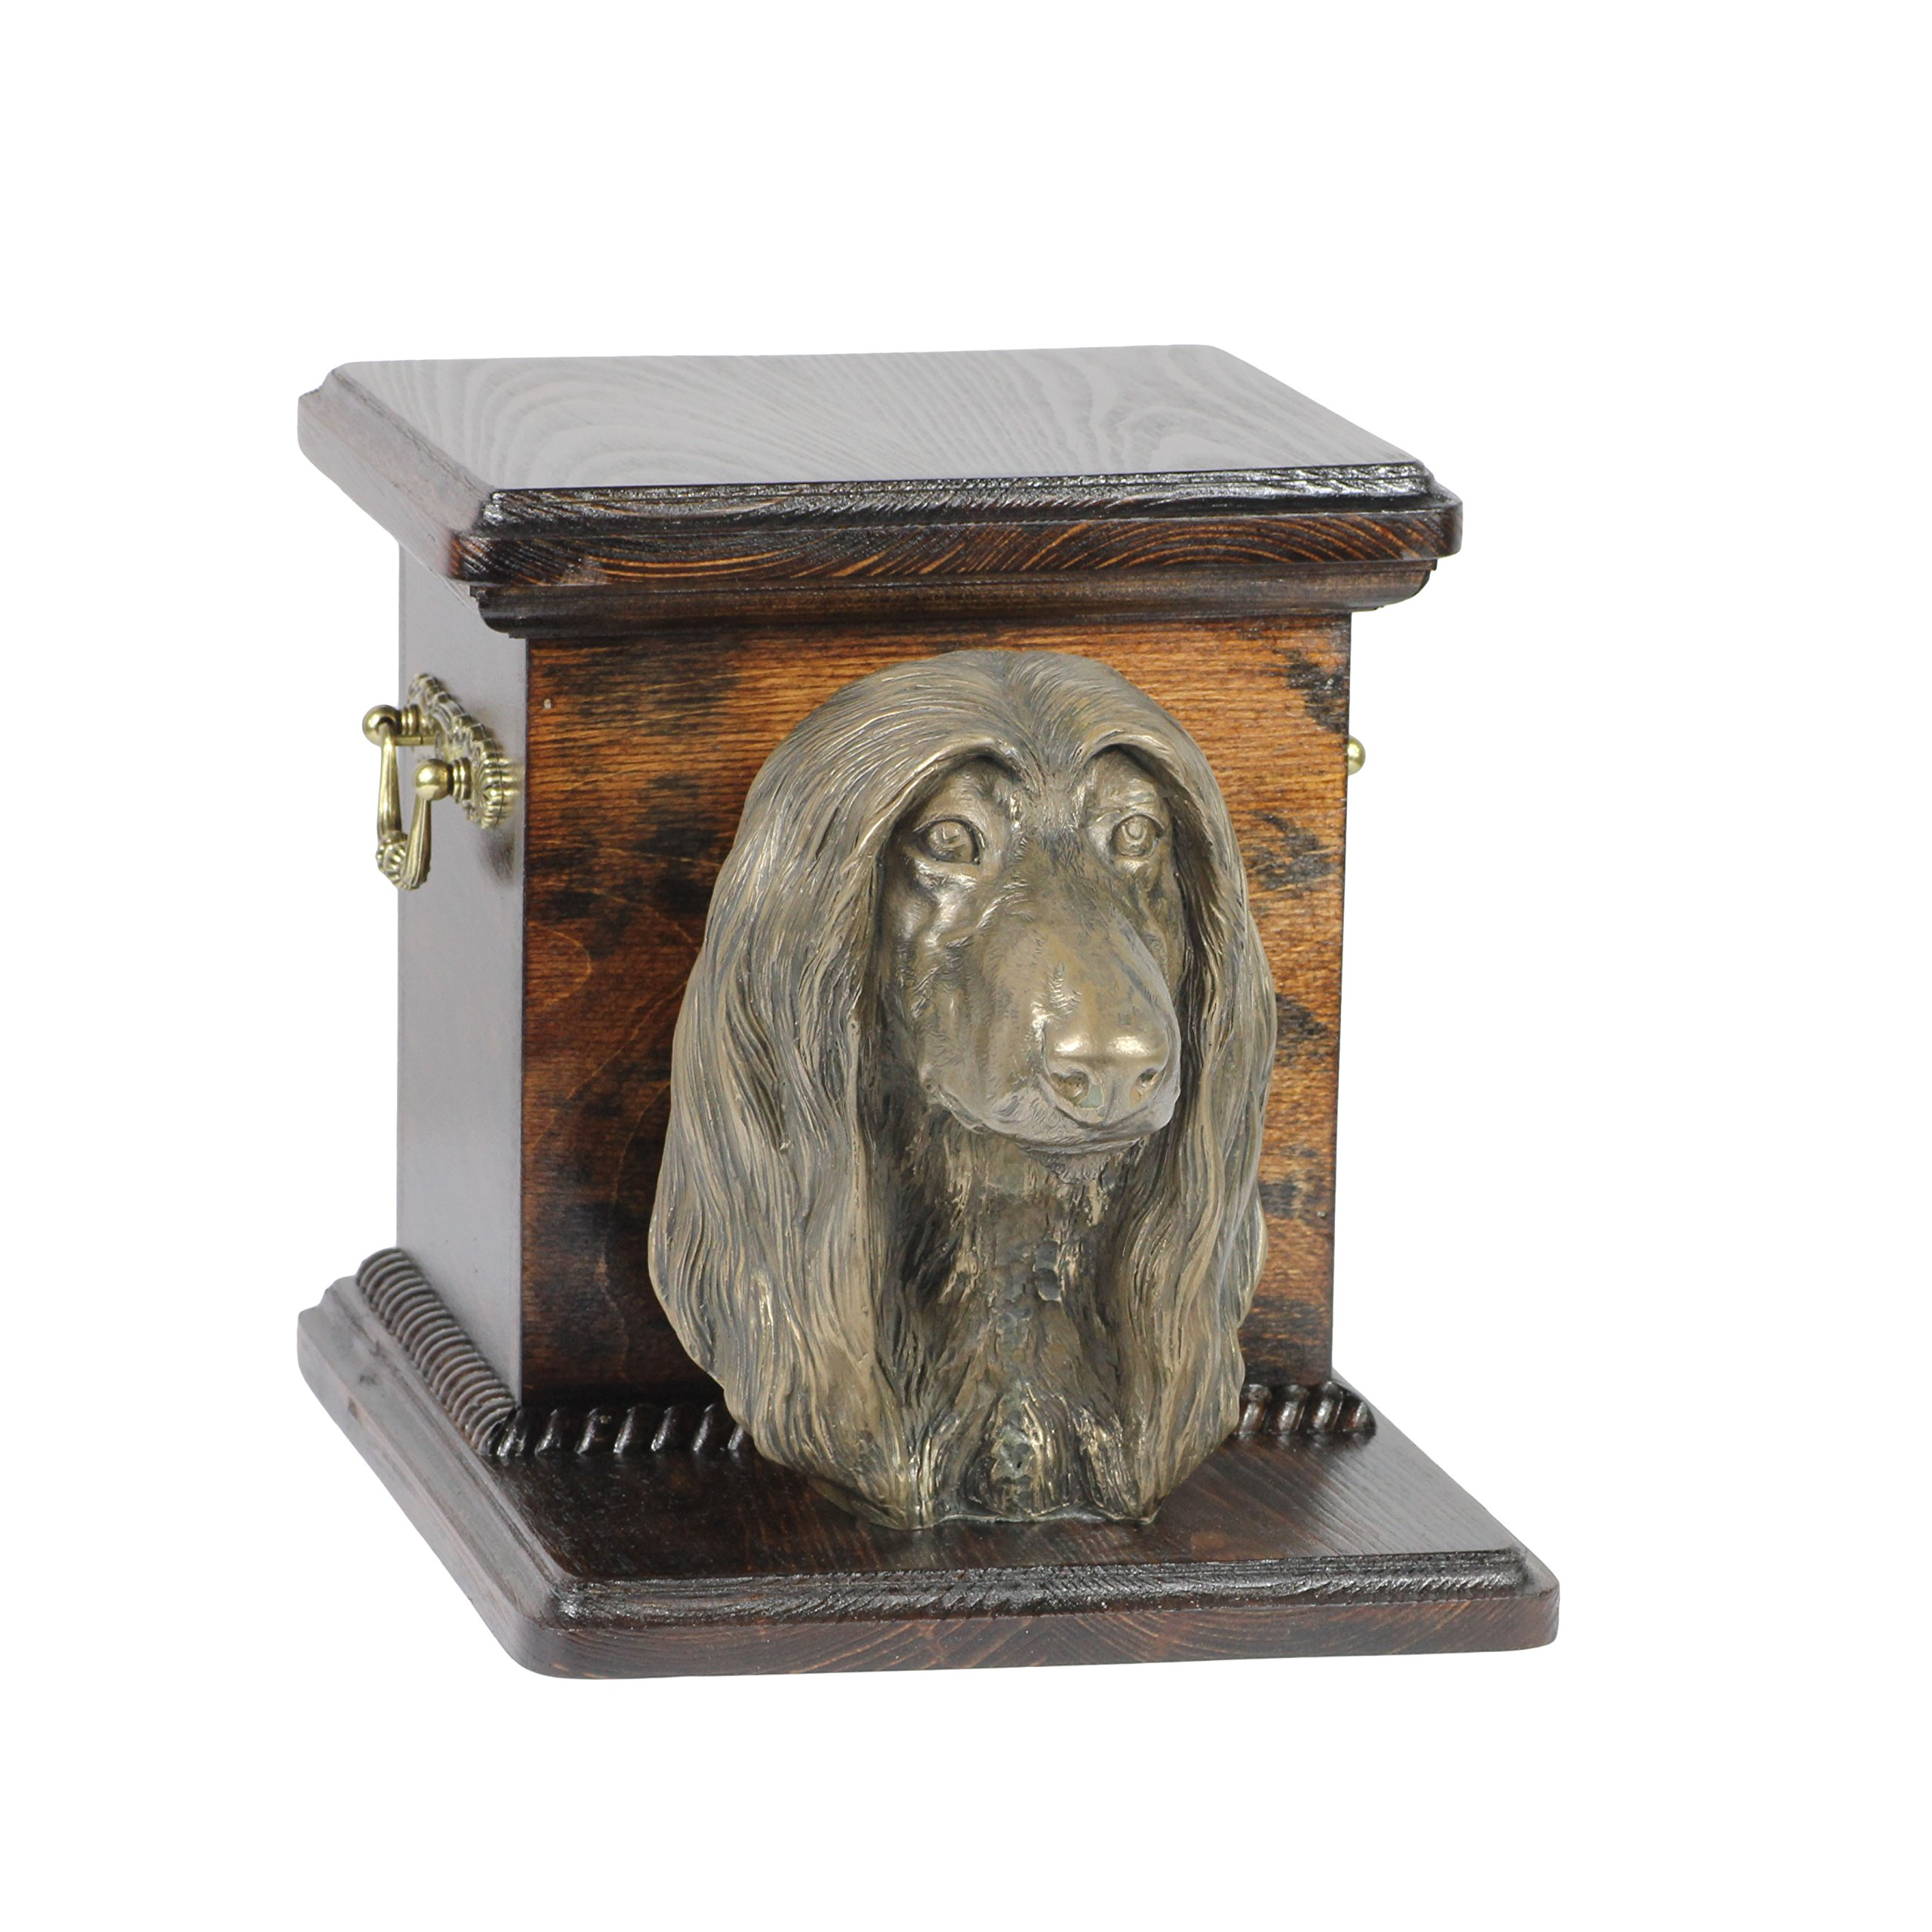 Afghan Hound, memorial, urn for dog's ashes, with dog statue, ArtDog